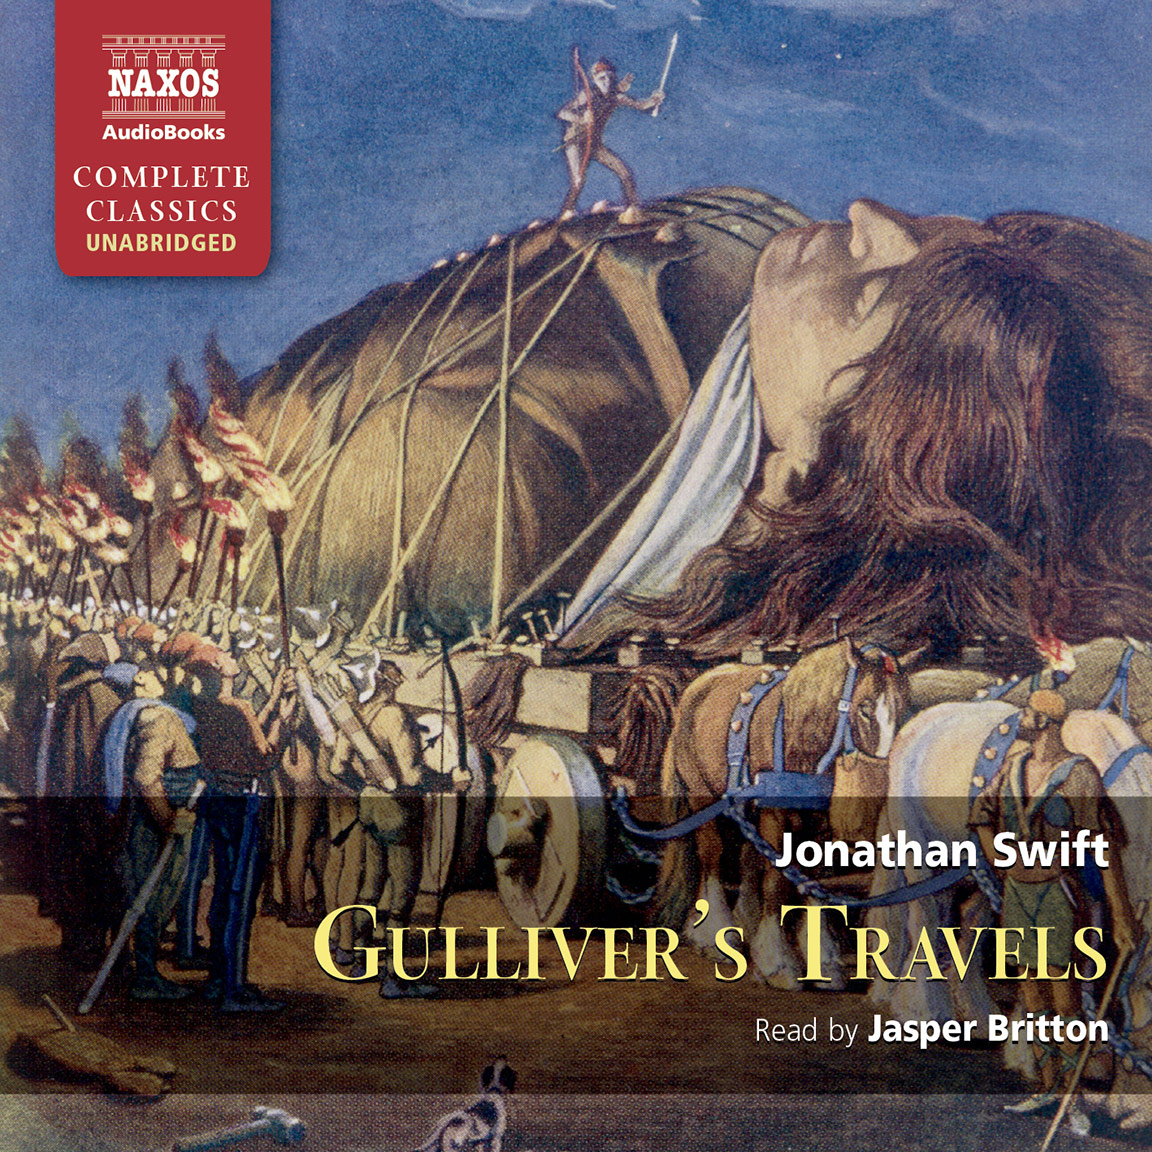 Gulliver's Travels (unabridged)